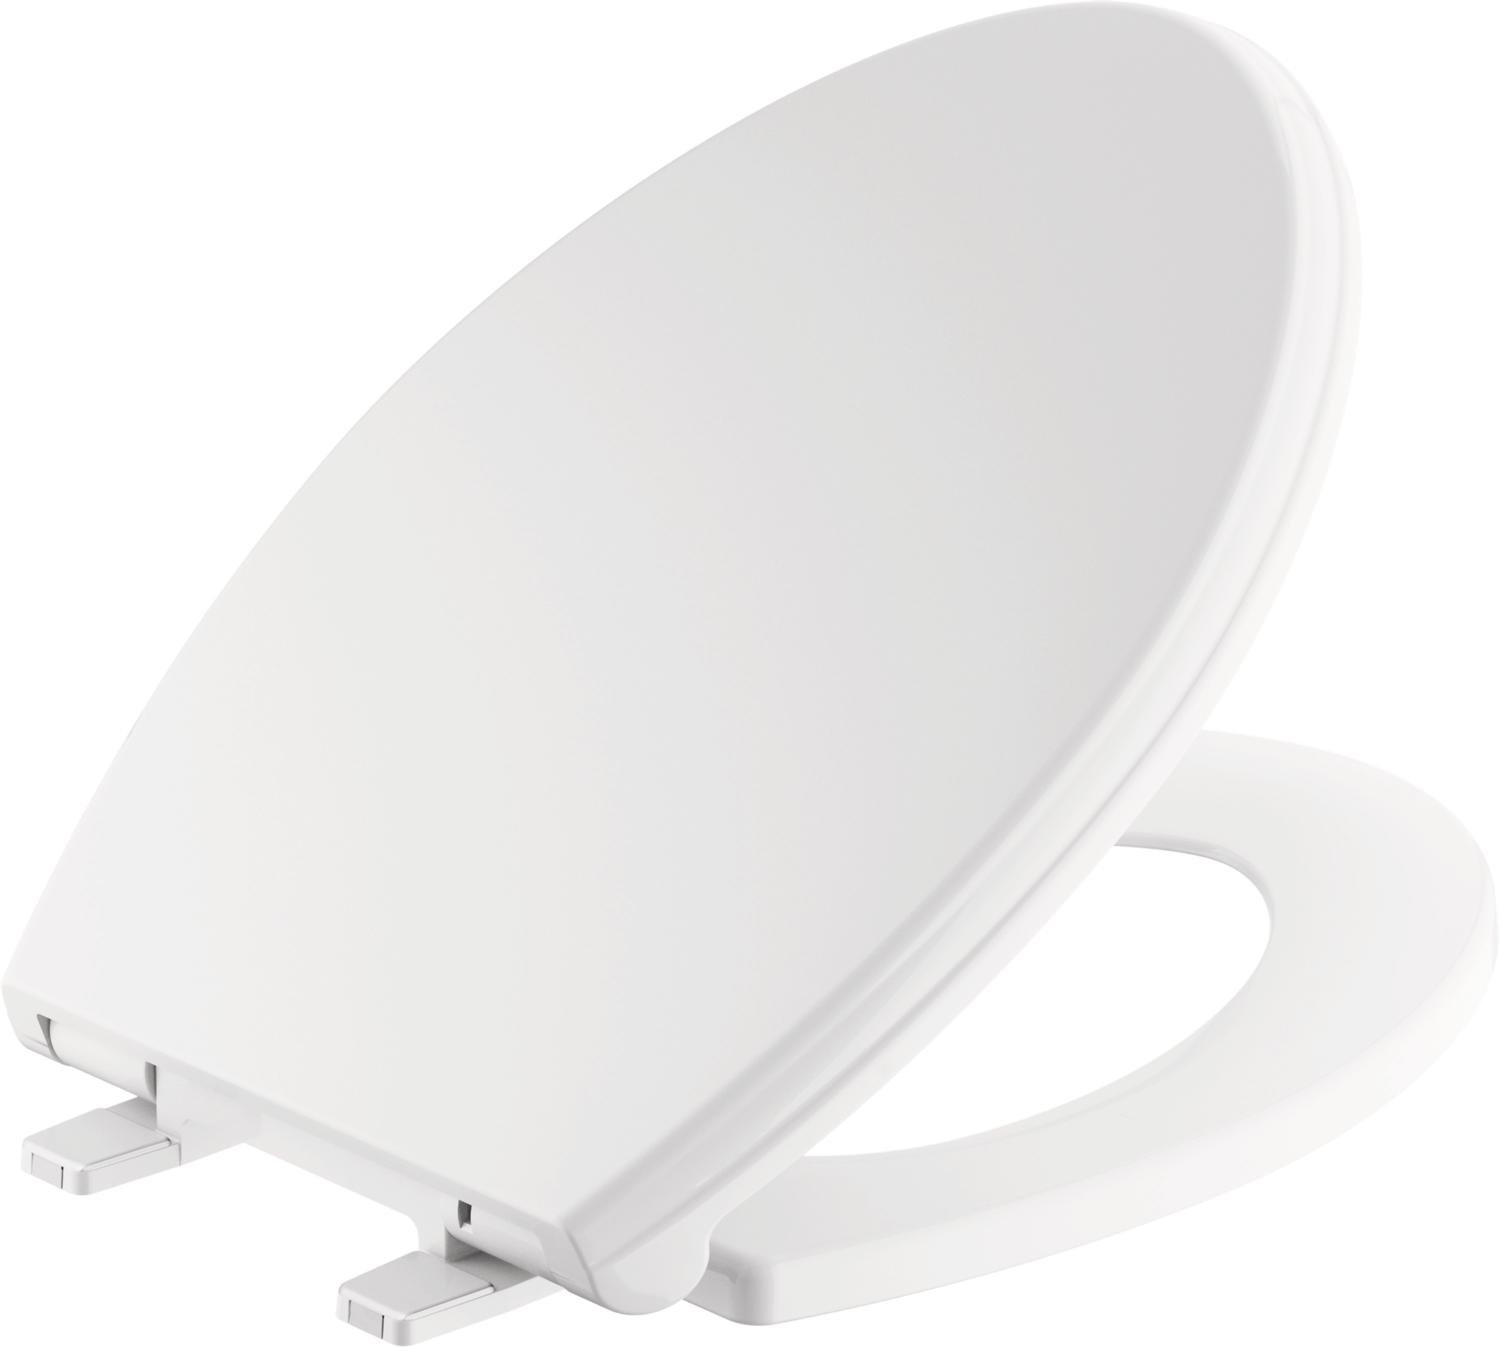 Delta Faucet 811901-WH Wycliffe Elongated Slow-Close Toilet Seat with Non-slip Seat Bumpers, White by DELTA FAUCET